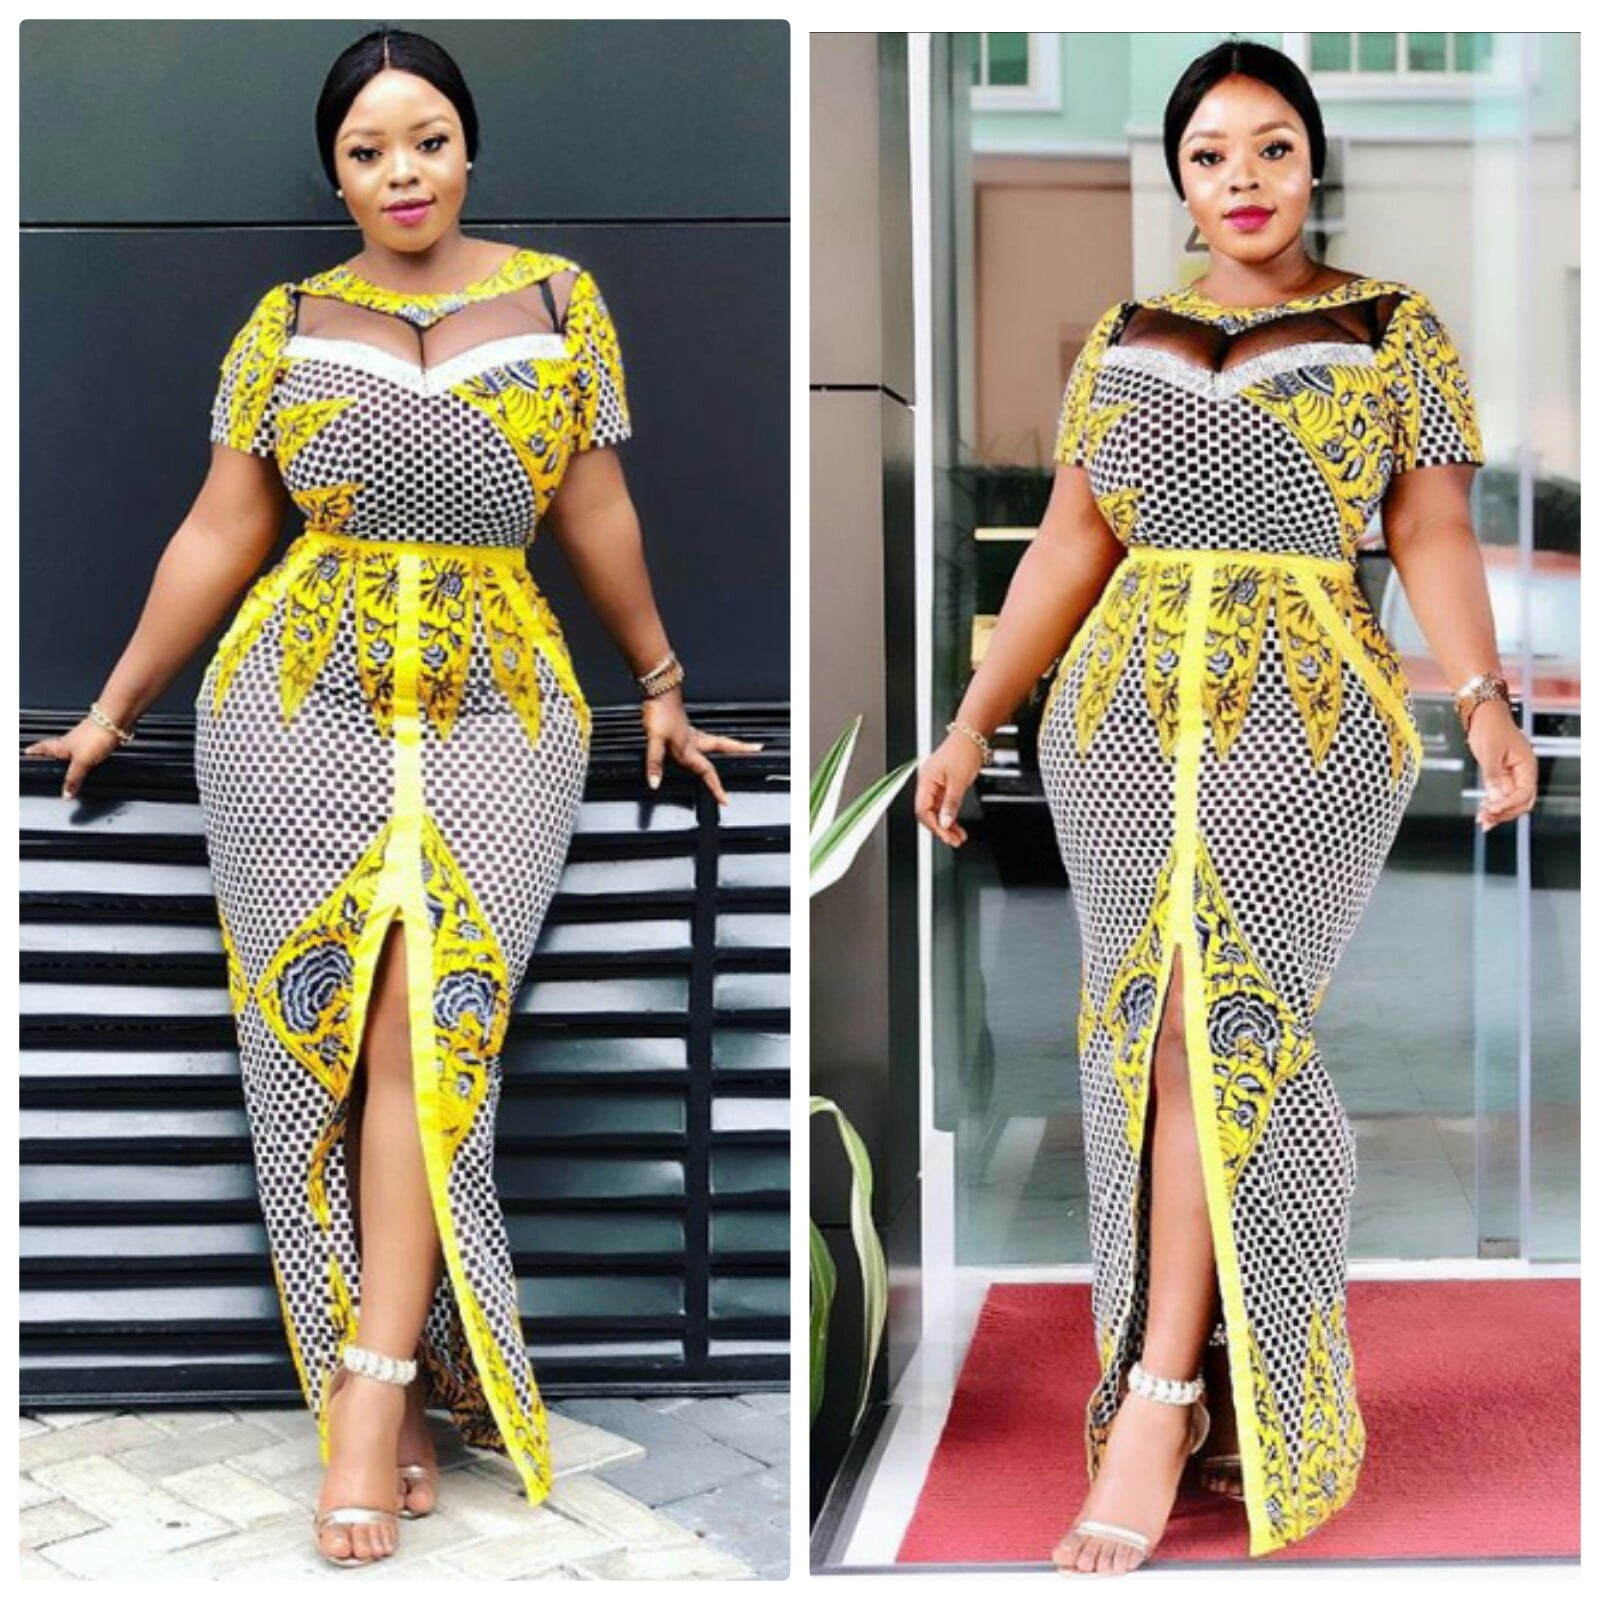 Winnie Mashaba Outfits: Beautiful Yellow & Grey Ankara Dress With Black Mesh Top